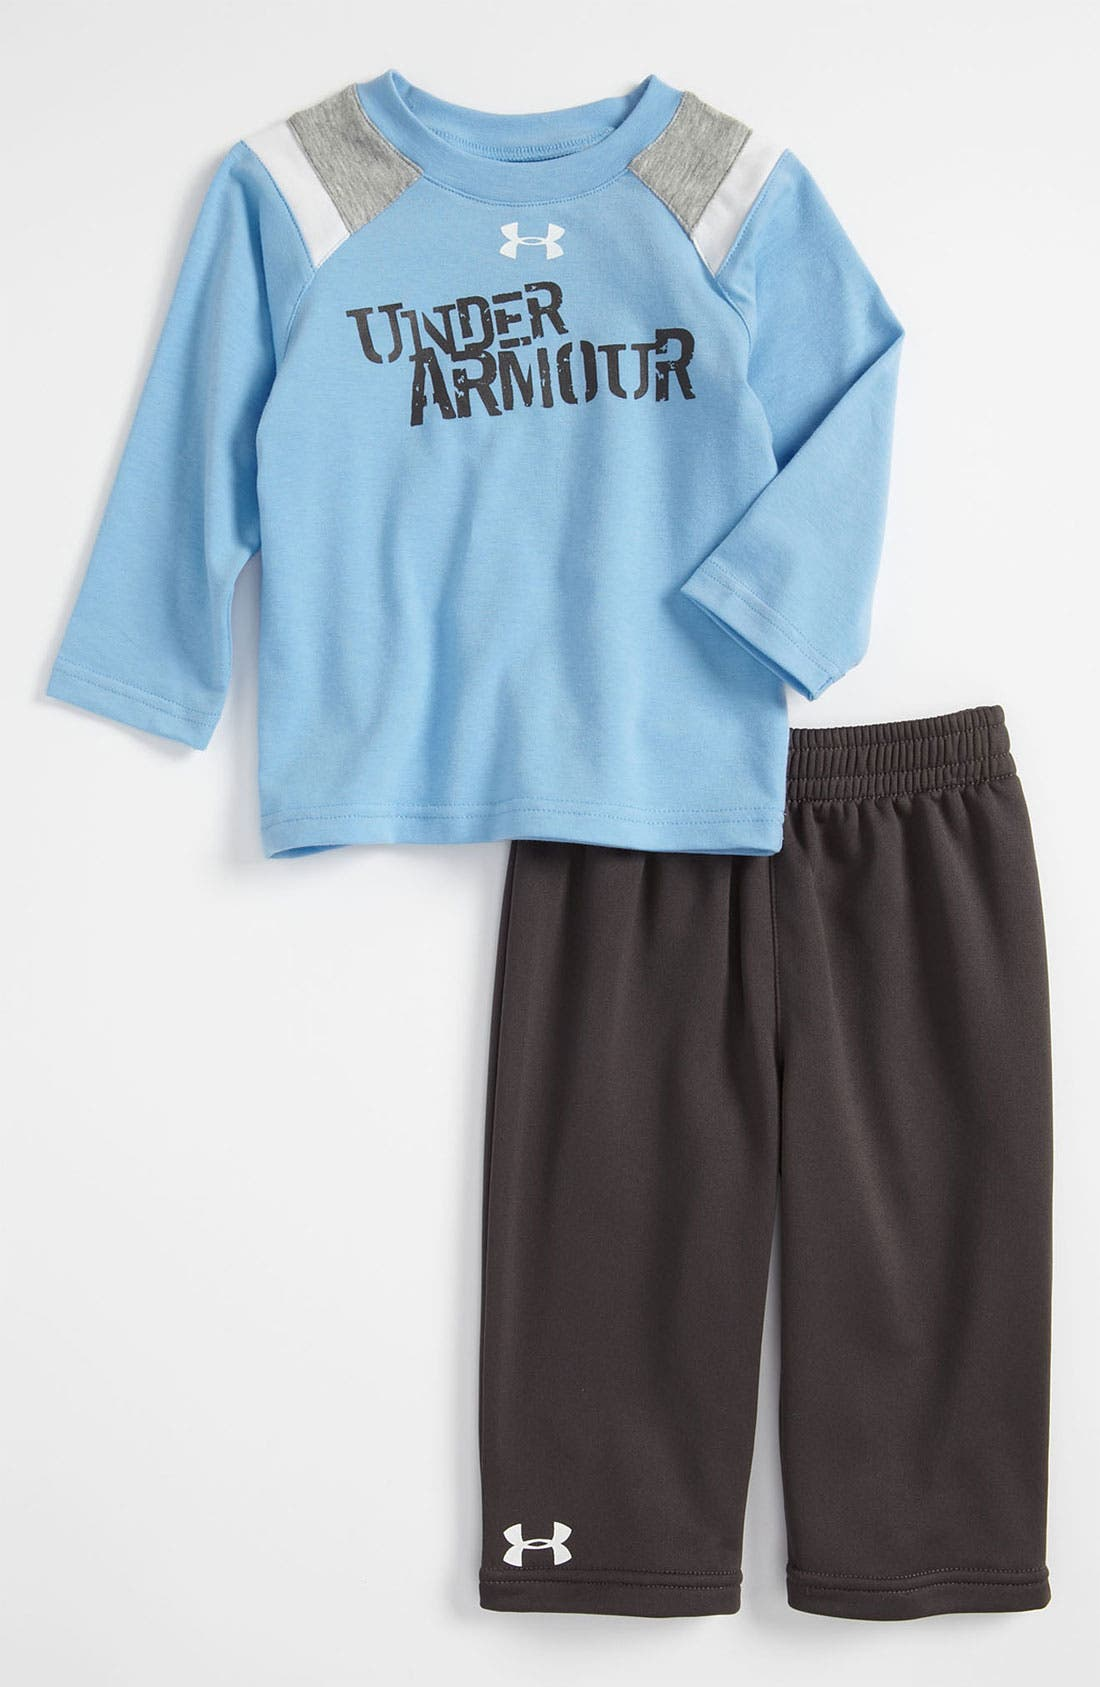 Alternate Image 1 Selected - Under Armour T-Shirt & Pants (Infant)